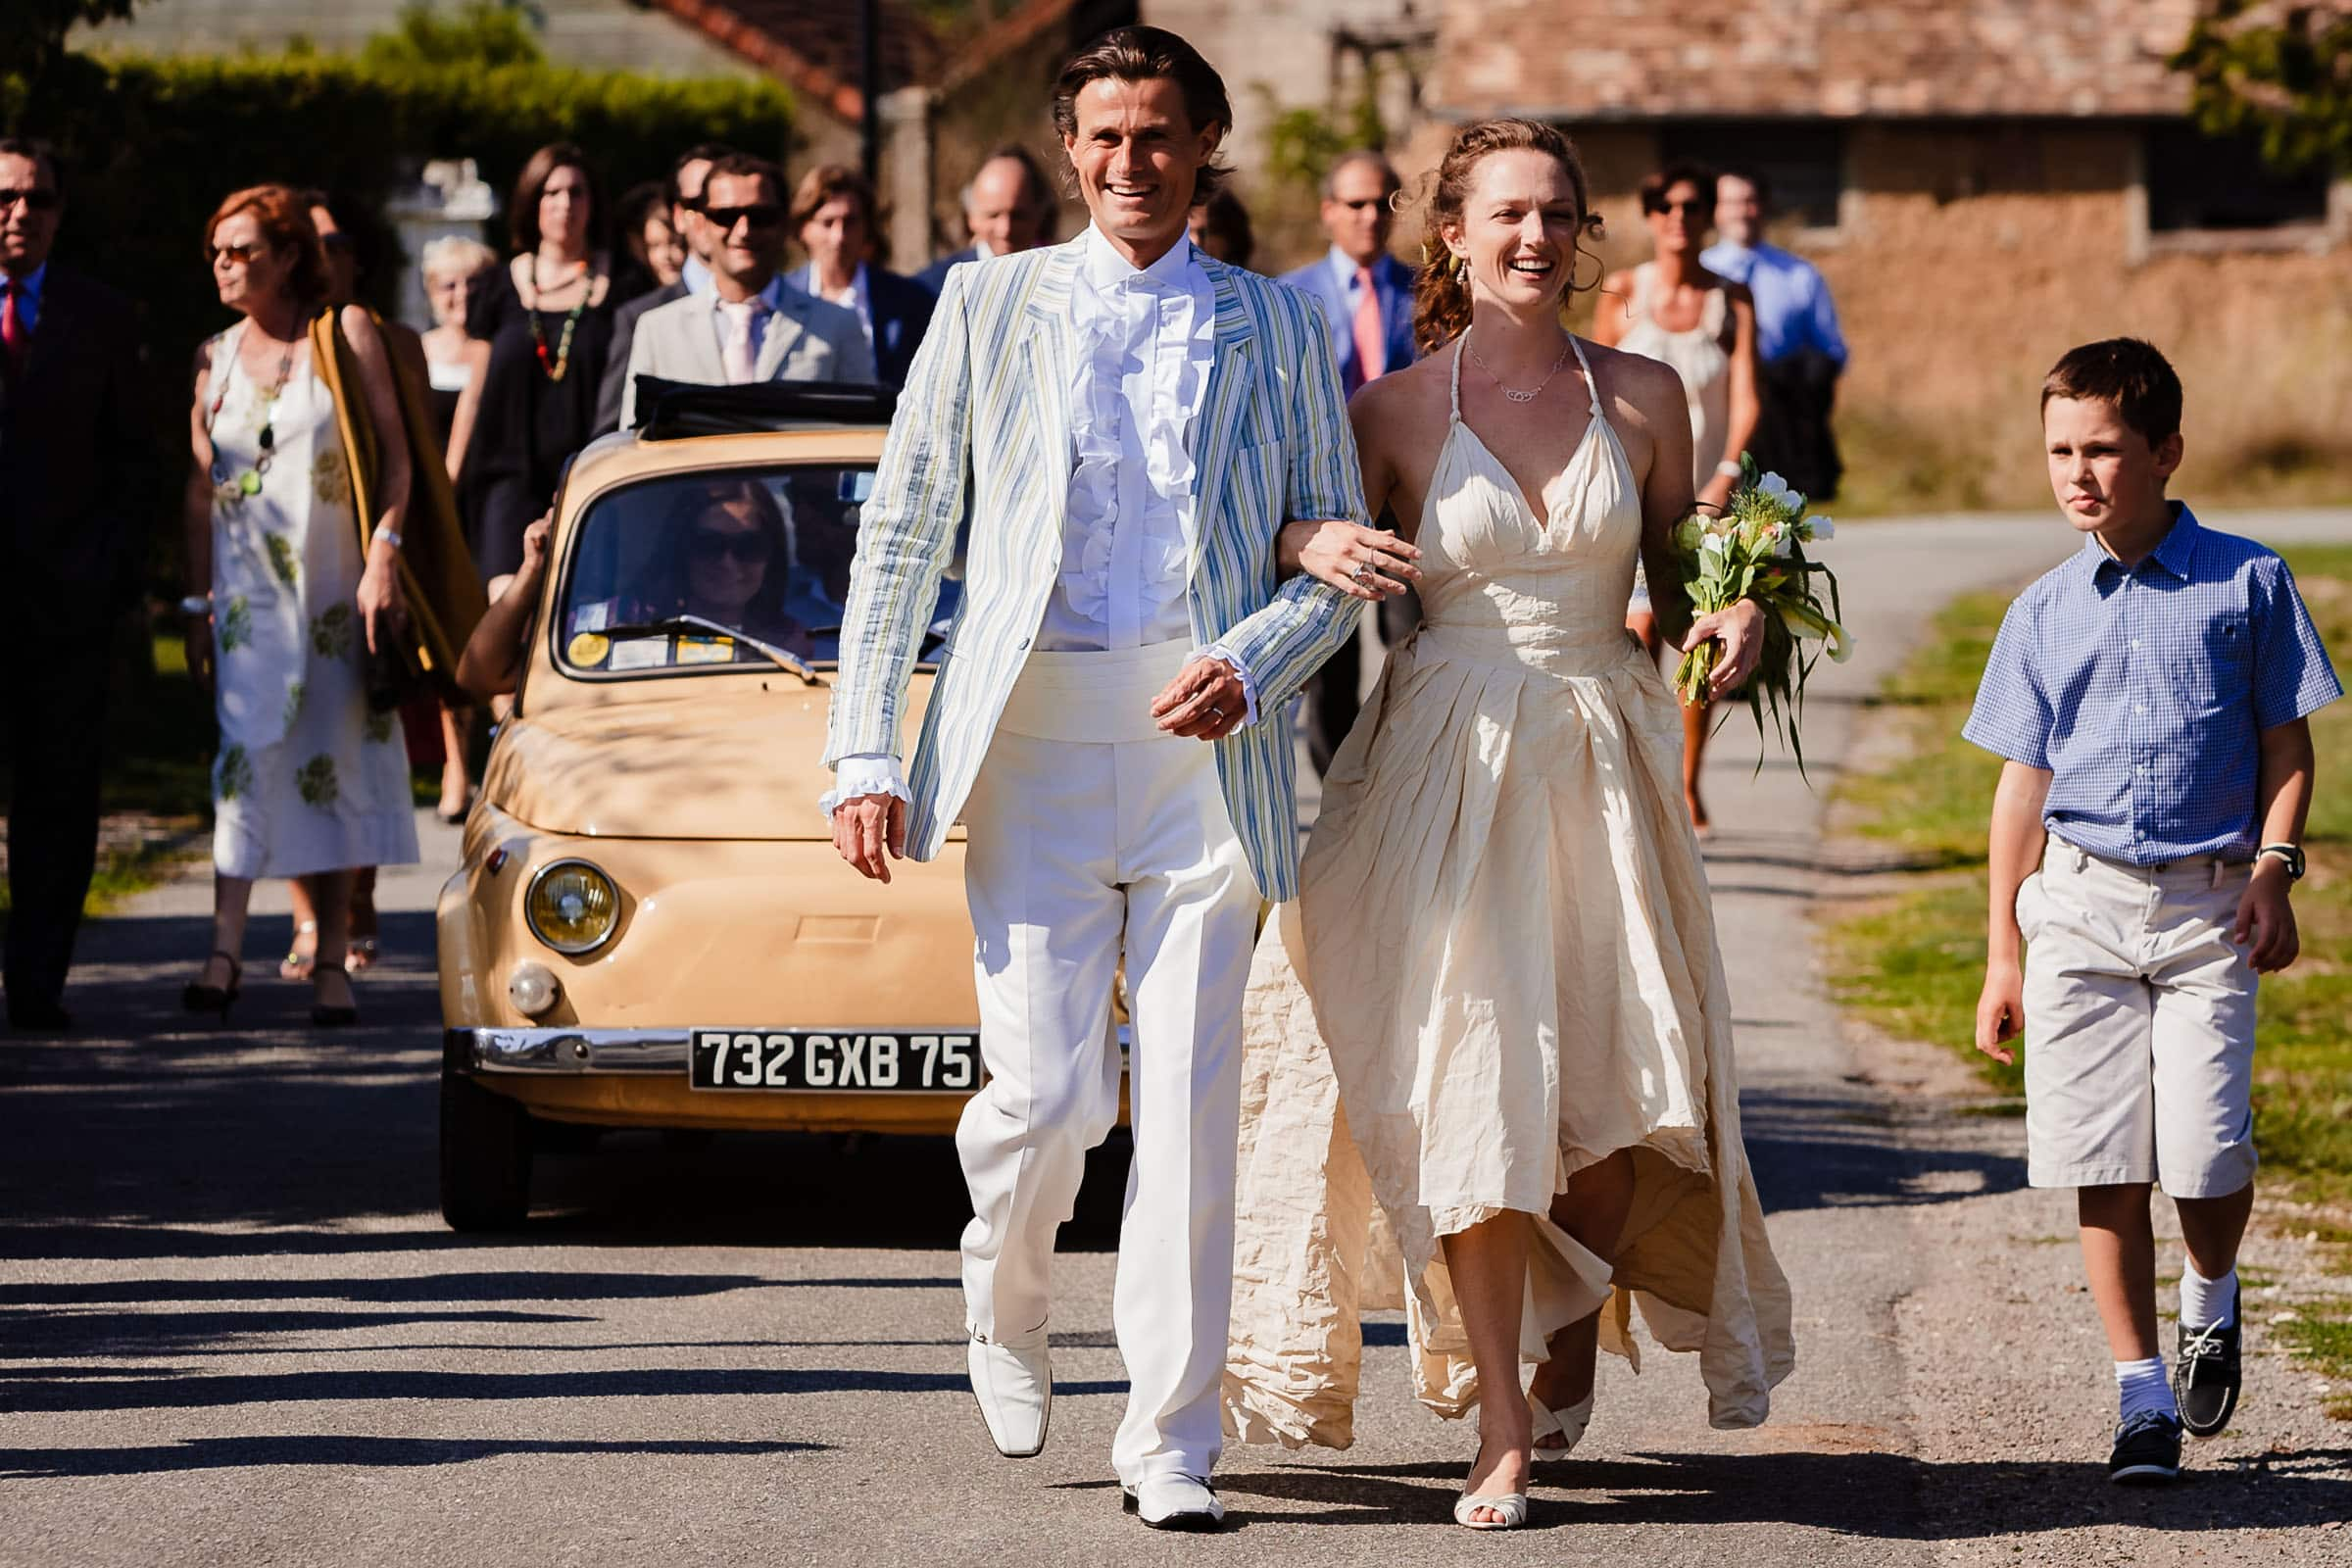 Bride and groom walking to their French chateau wedding sy Manoir des Prevanches in South of France